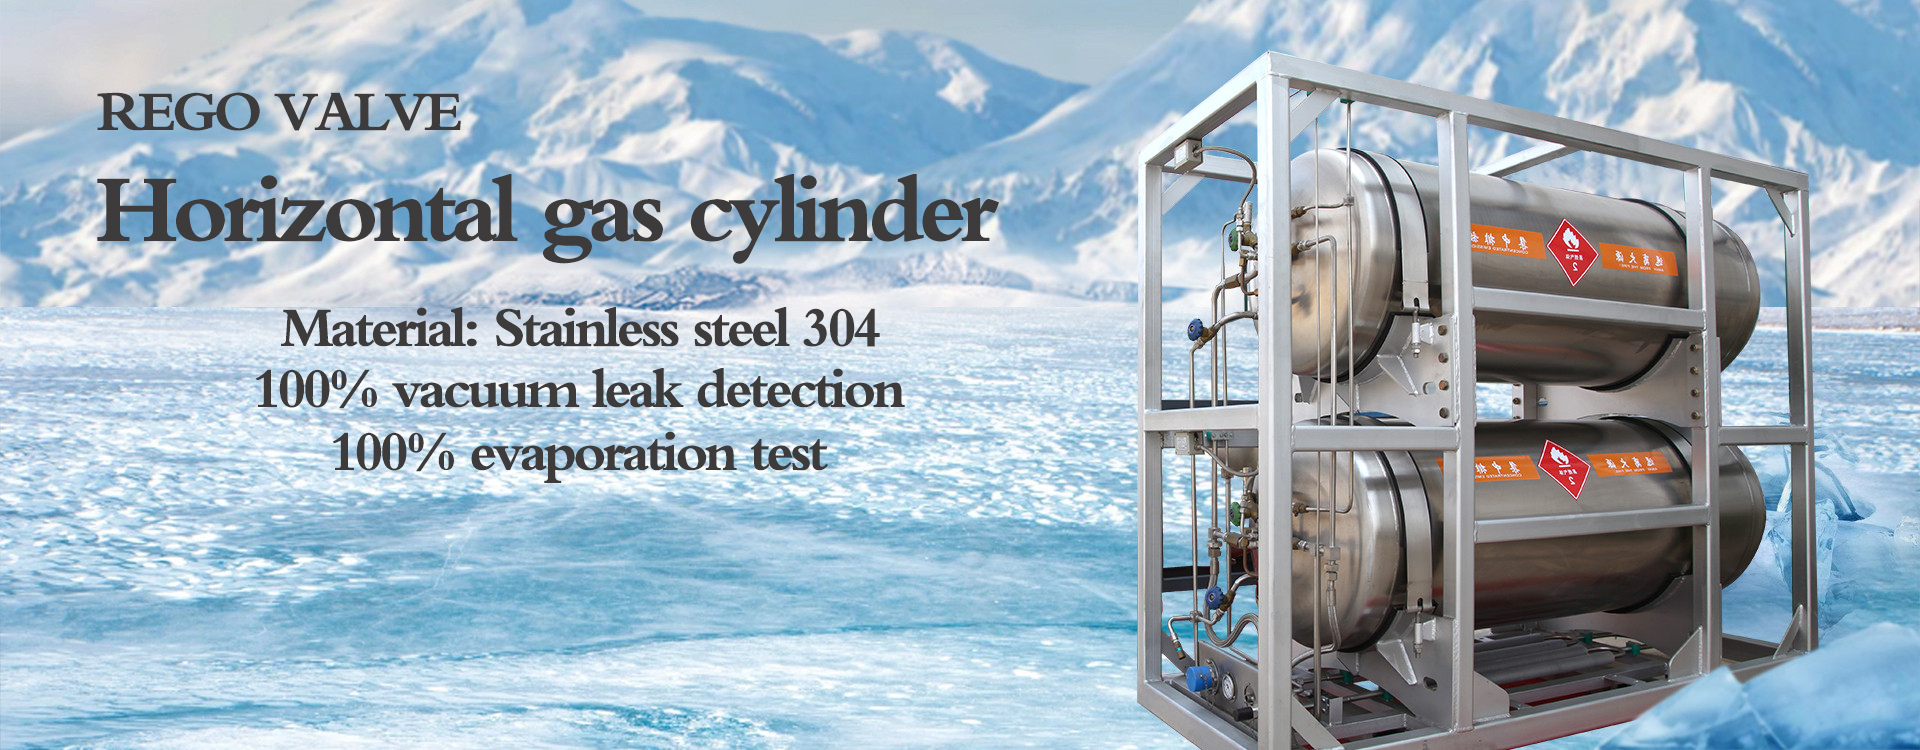 Cryogenic gas cylinder